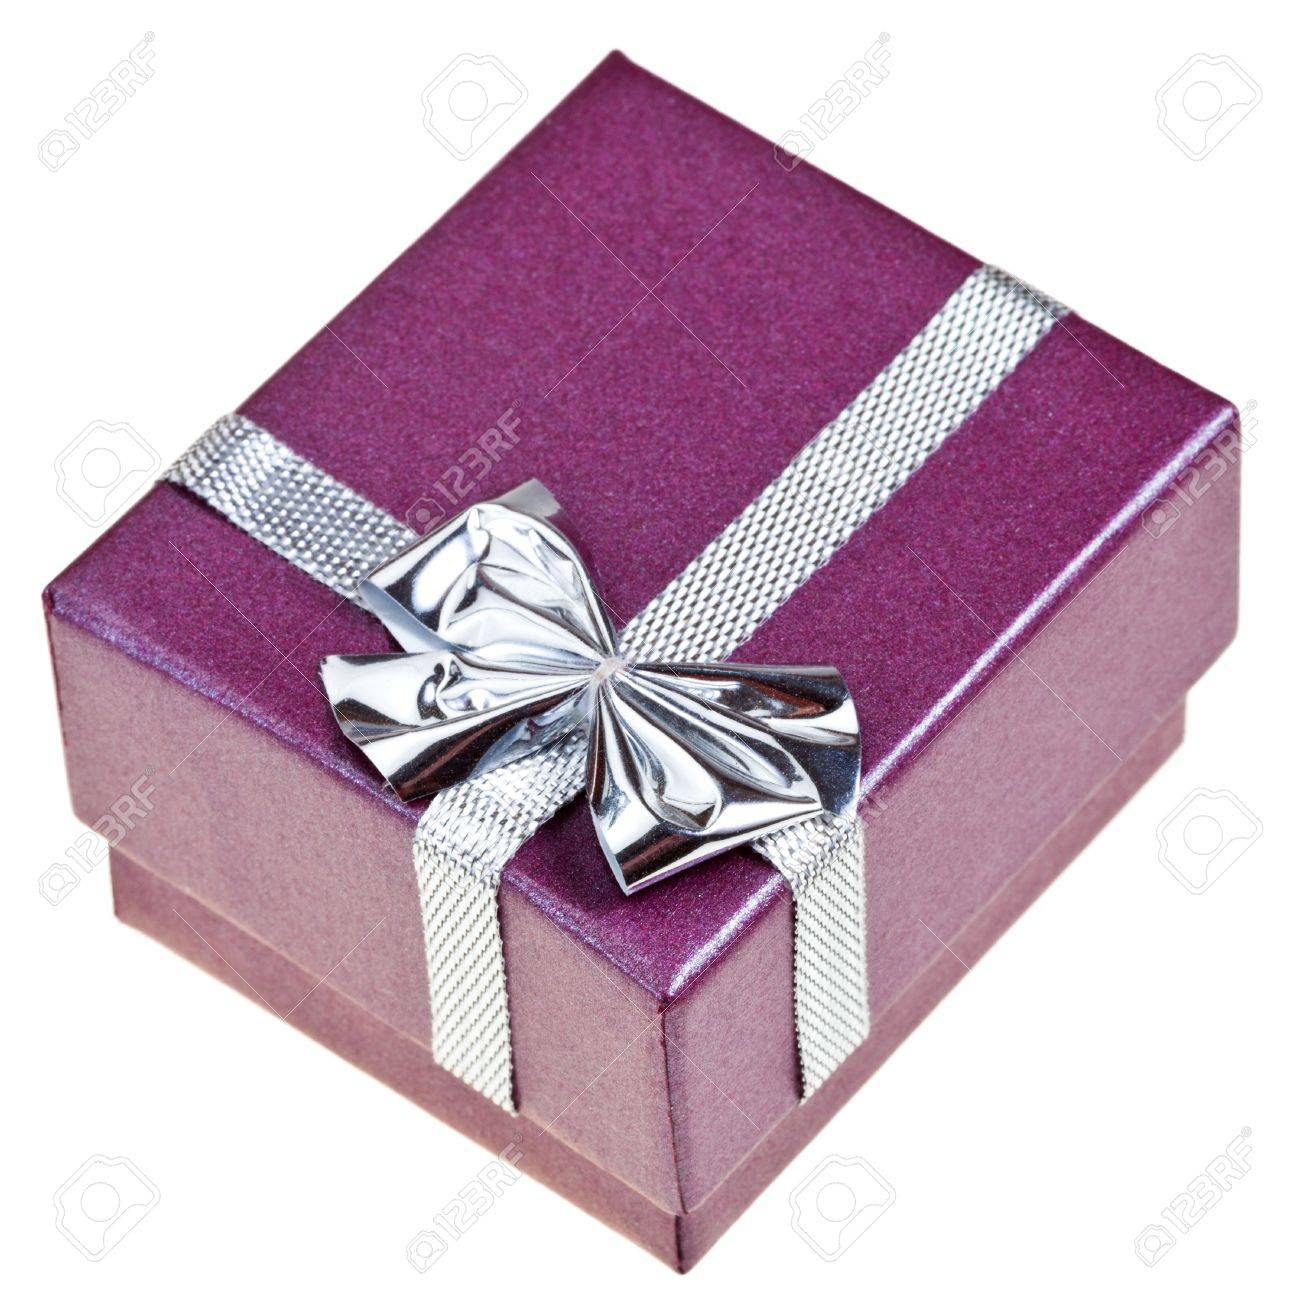 small purple gift box with silver bow isolated on white background Stock Photo - 18901911  sc 1 st  123RF.com : purple gift boxes - princetonregatta.org